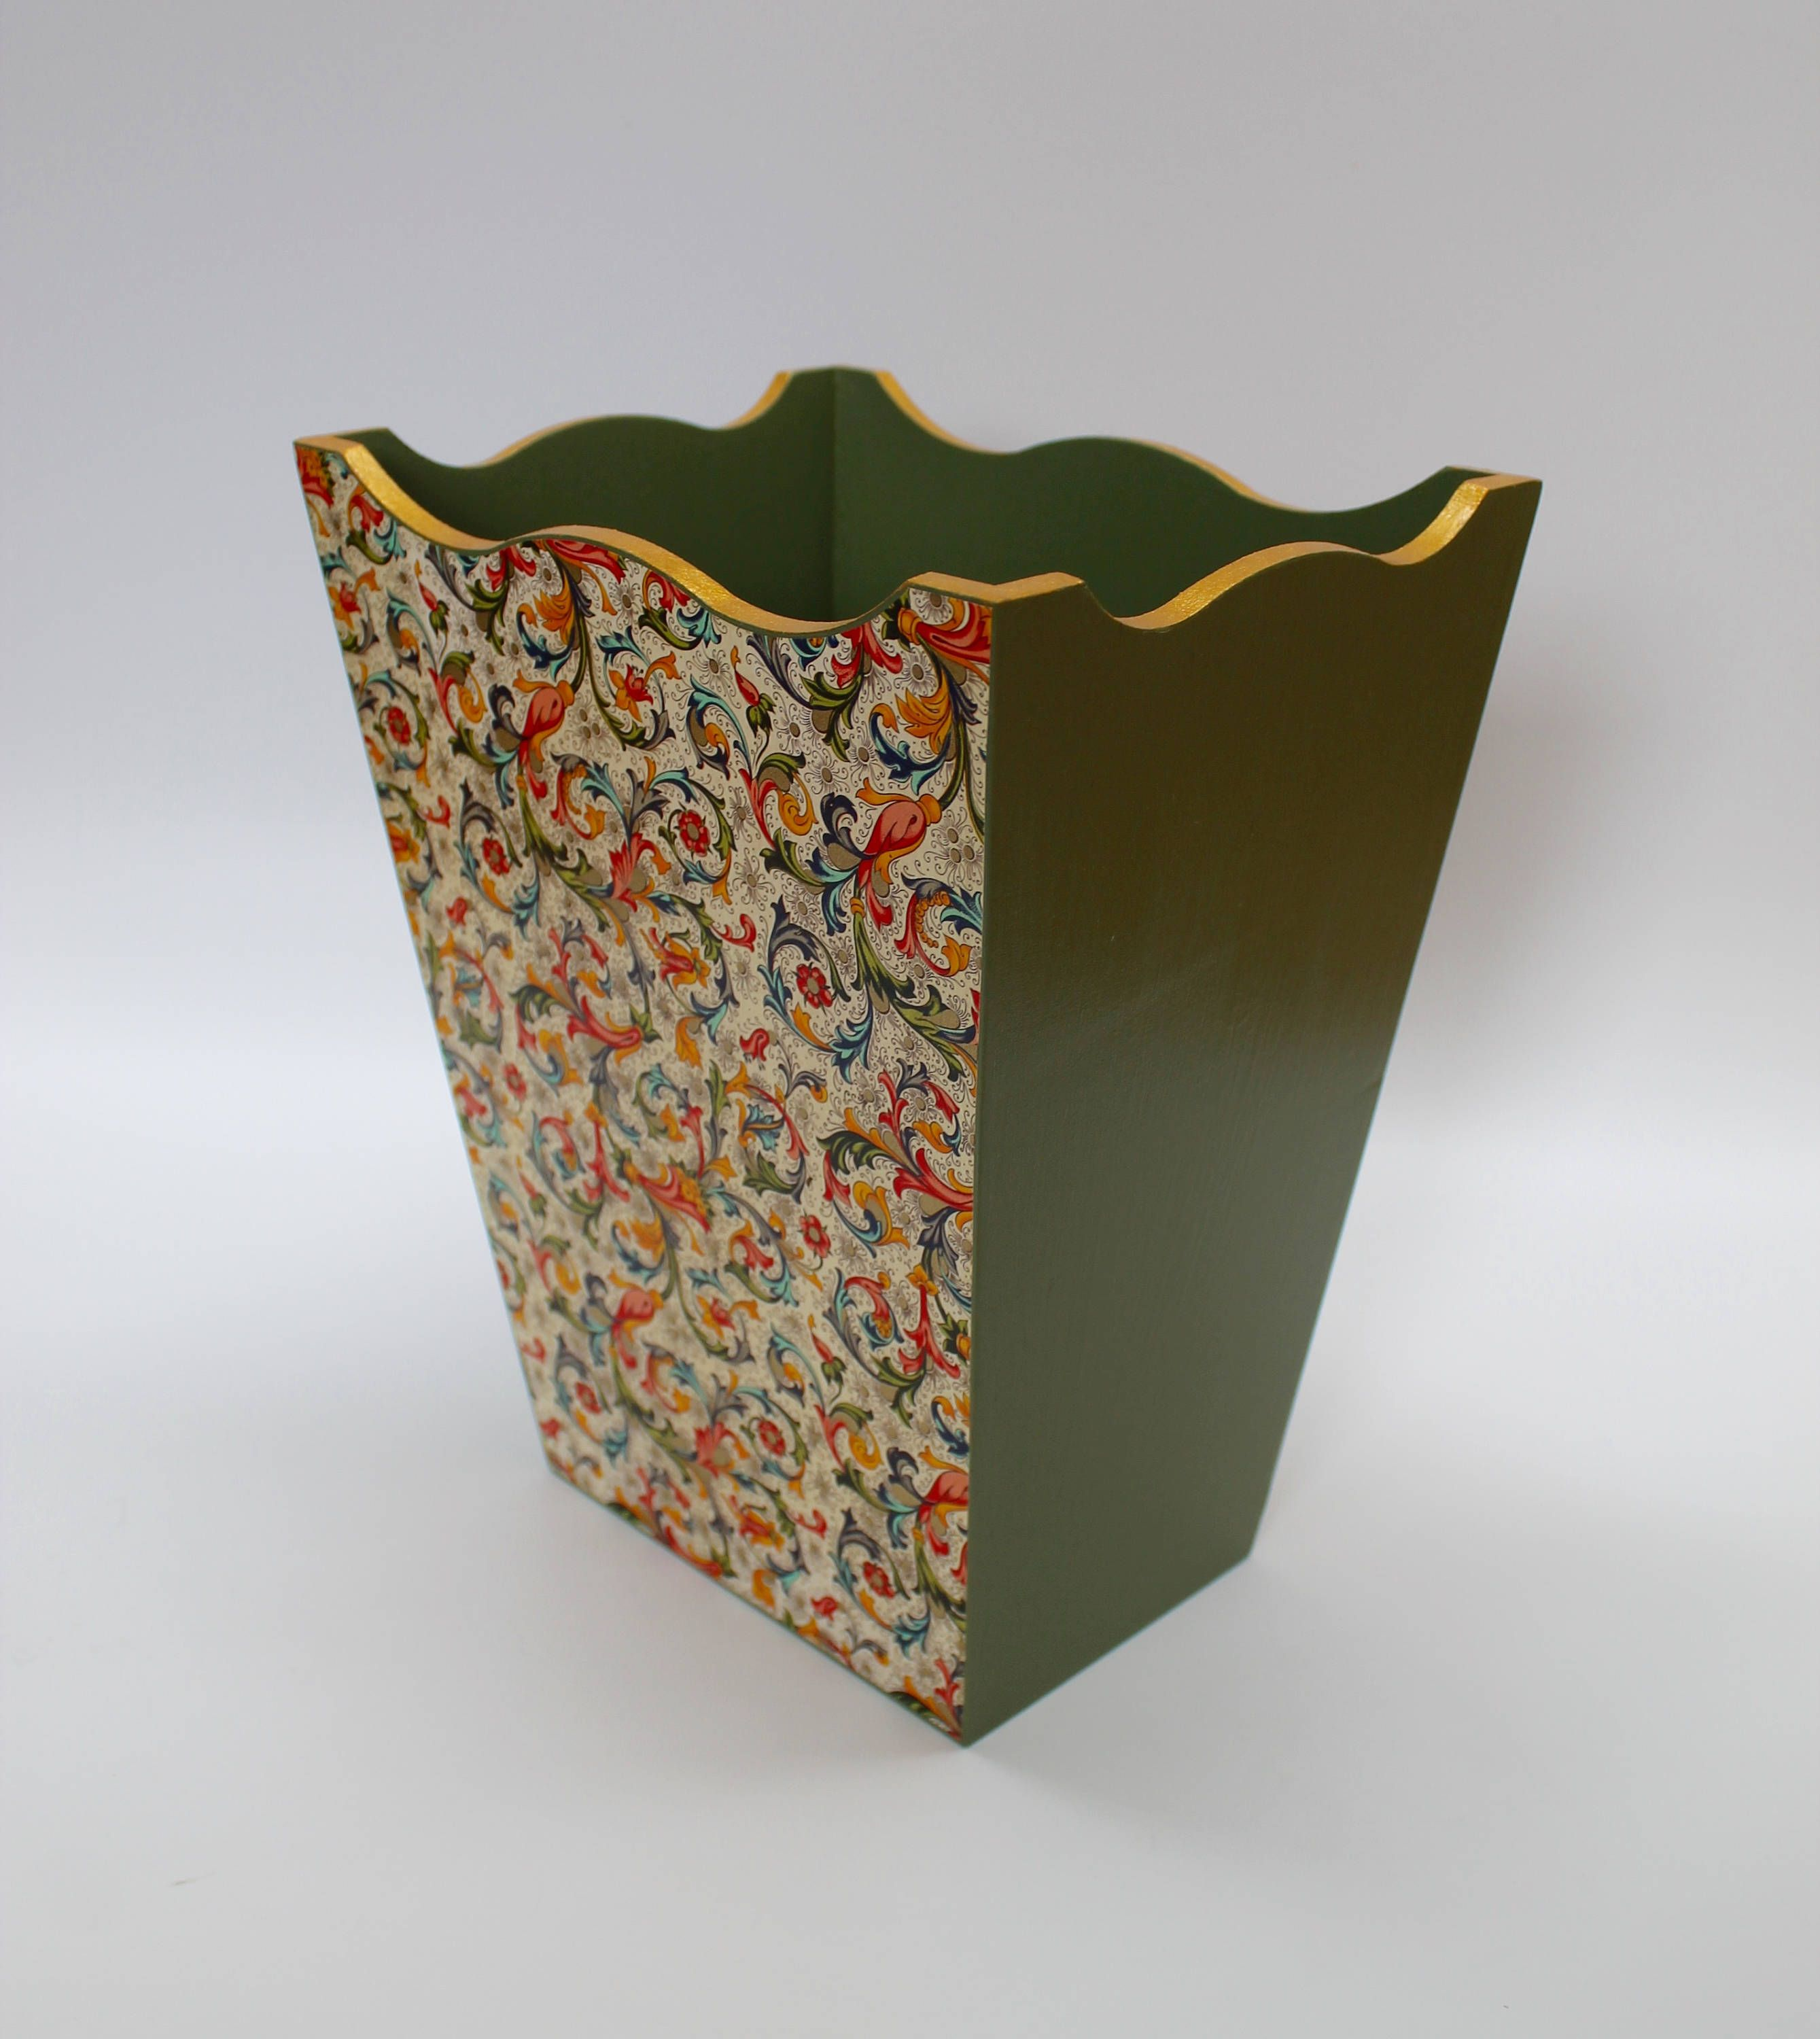 Wood Waste Paper Basket Green Bin With Gold Rim And